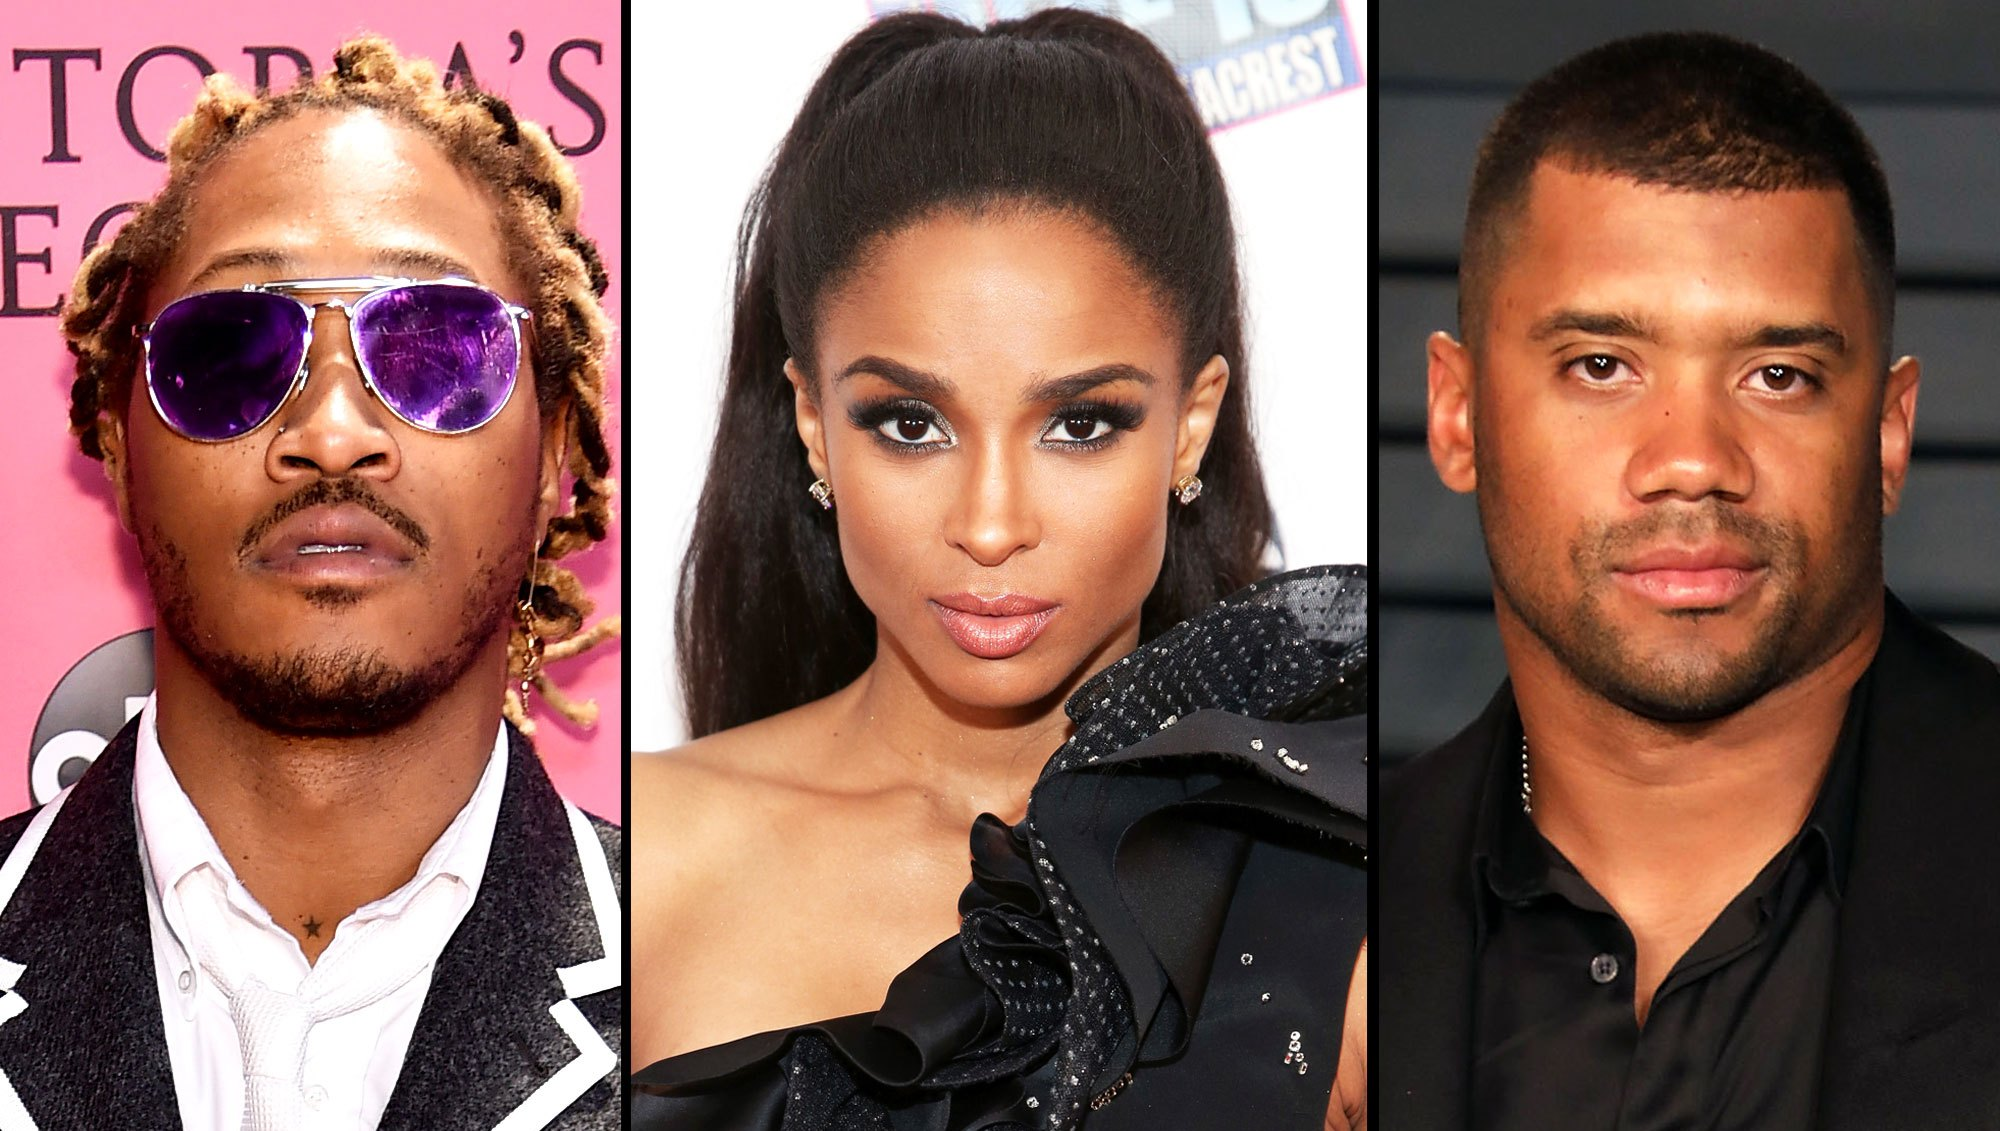 Future Slams Ex Ciara's Husband Russell Wilson for 'Not Being a Man': 'He Do Exactly What She Tell Him to Do'